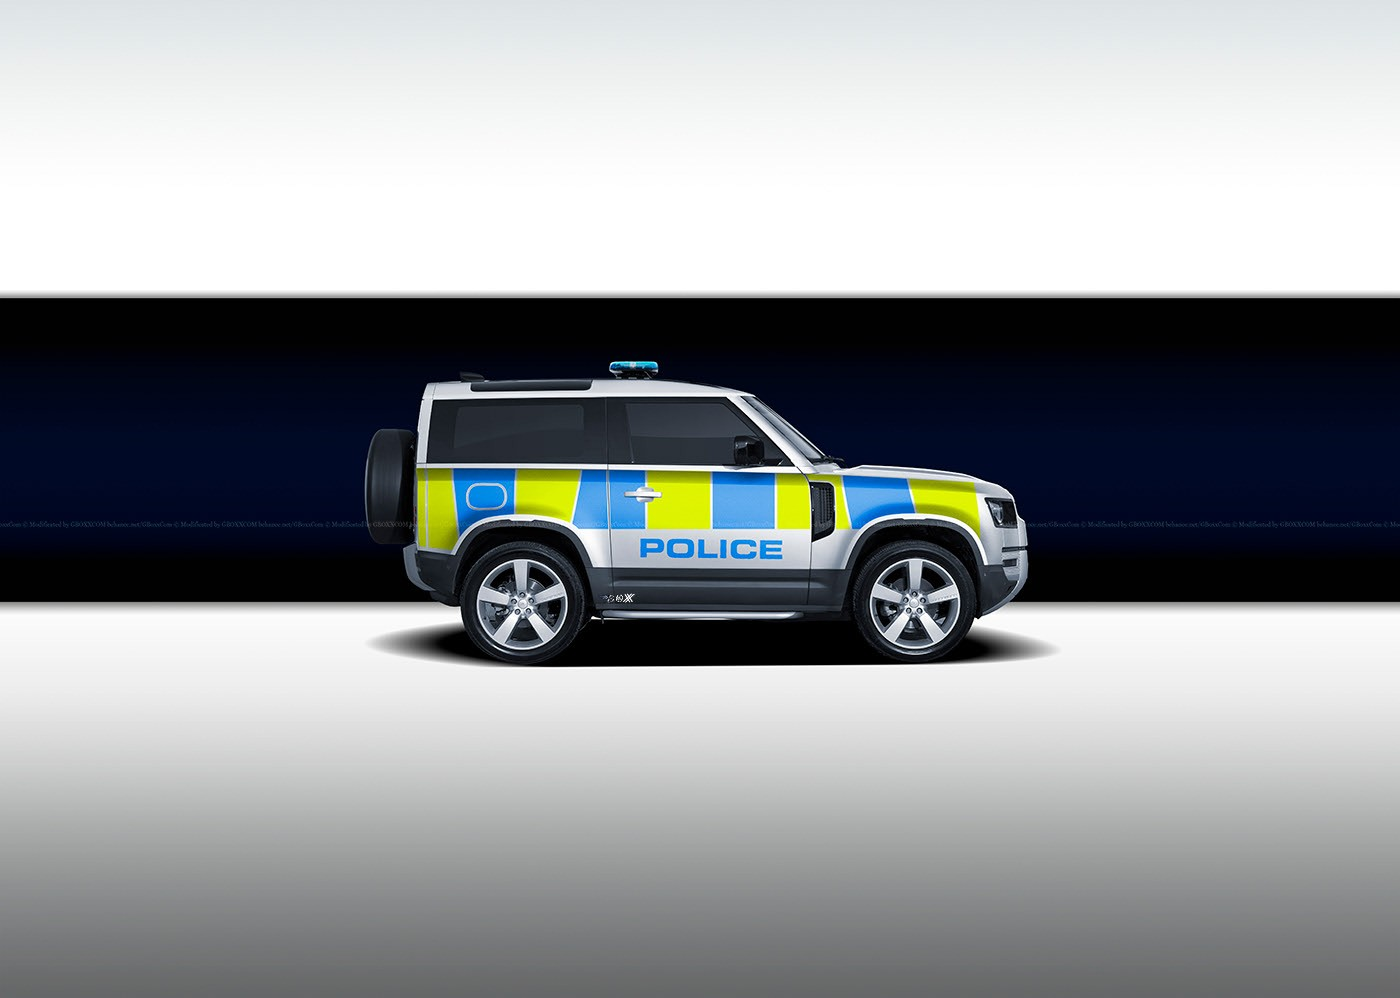 2020 Land Rover Defender Rendered as Various Police Cars ...